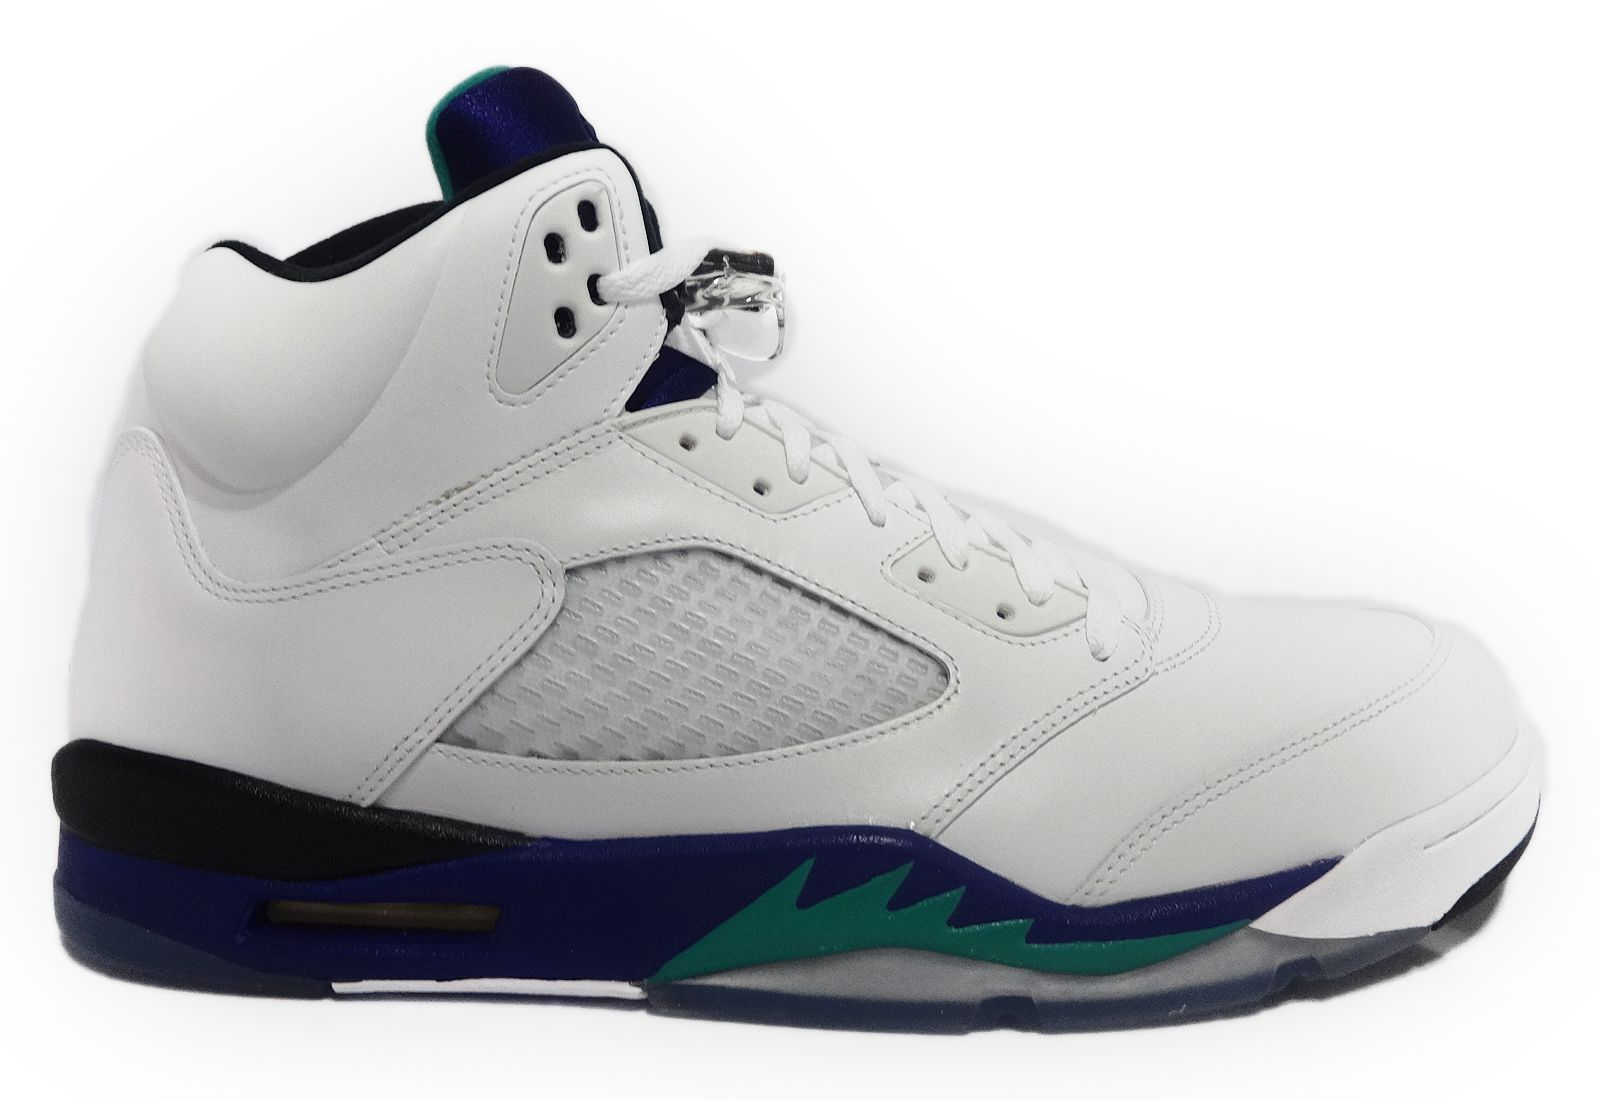 official photos 4e7d9 34063  136027-108  AIR JORDAN 5 RETRO WHITE NEW EMERALD GRAPE BLK MEN SNEAKERS Sz  9